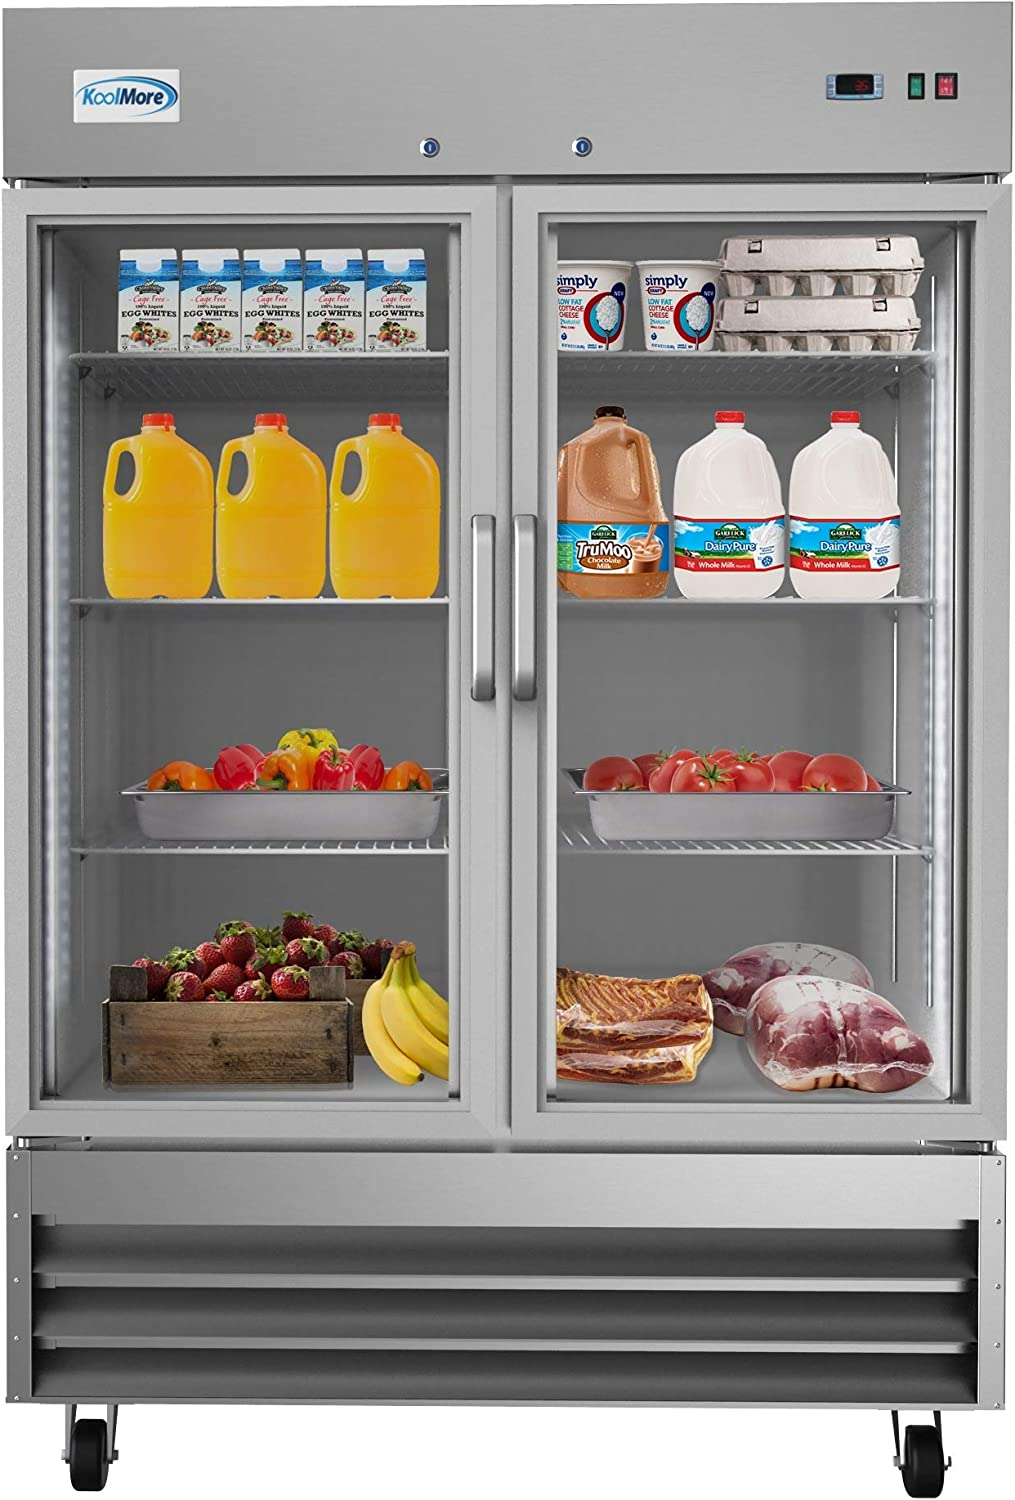 "KoolMore 54"" 2 Glass Door Commercial Reach-in Refrigerator Cooler with LED Lighting - 47 cu. ft 71Usfv-jPeL"